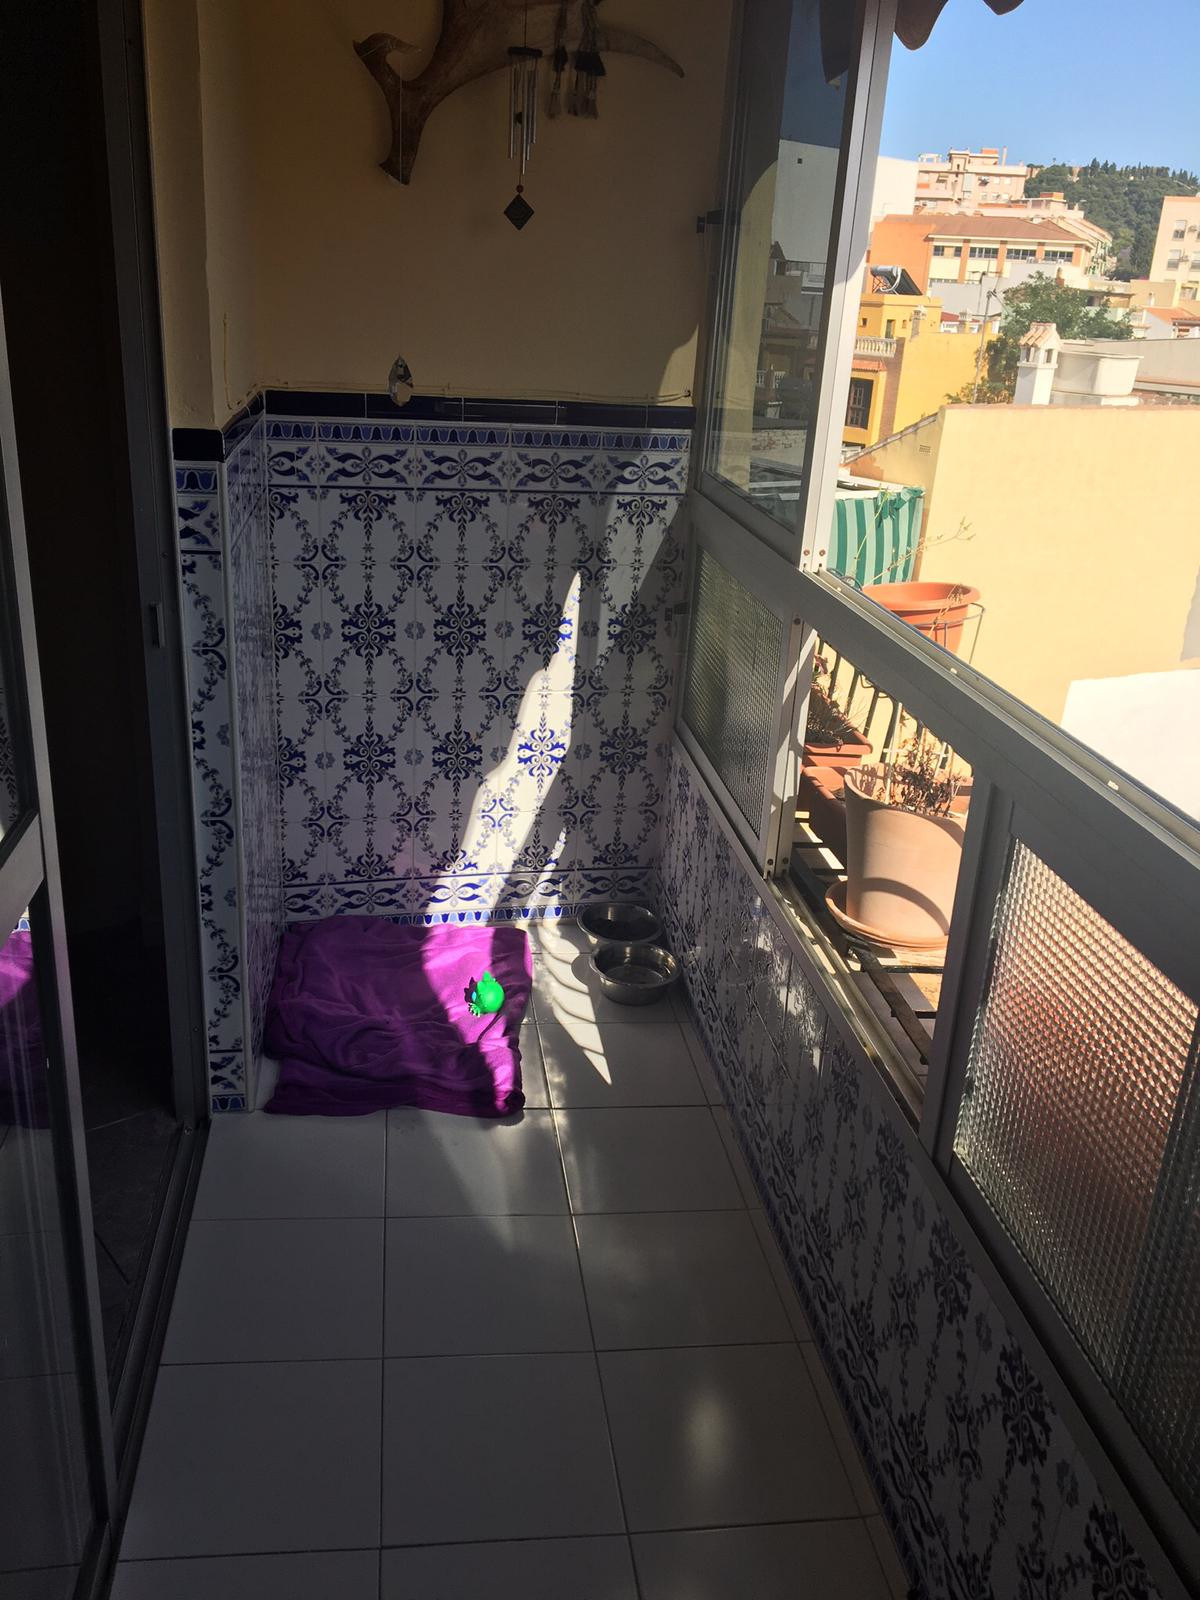 Middle Floor Apartment, Malaga 9mn Historic Centre, Costa del Sol. 2 Bedrooms was3, 1 Bathroom, Buil, Spain